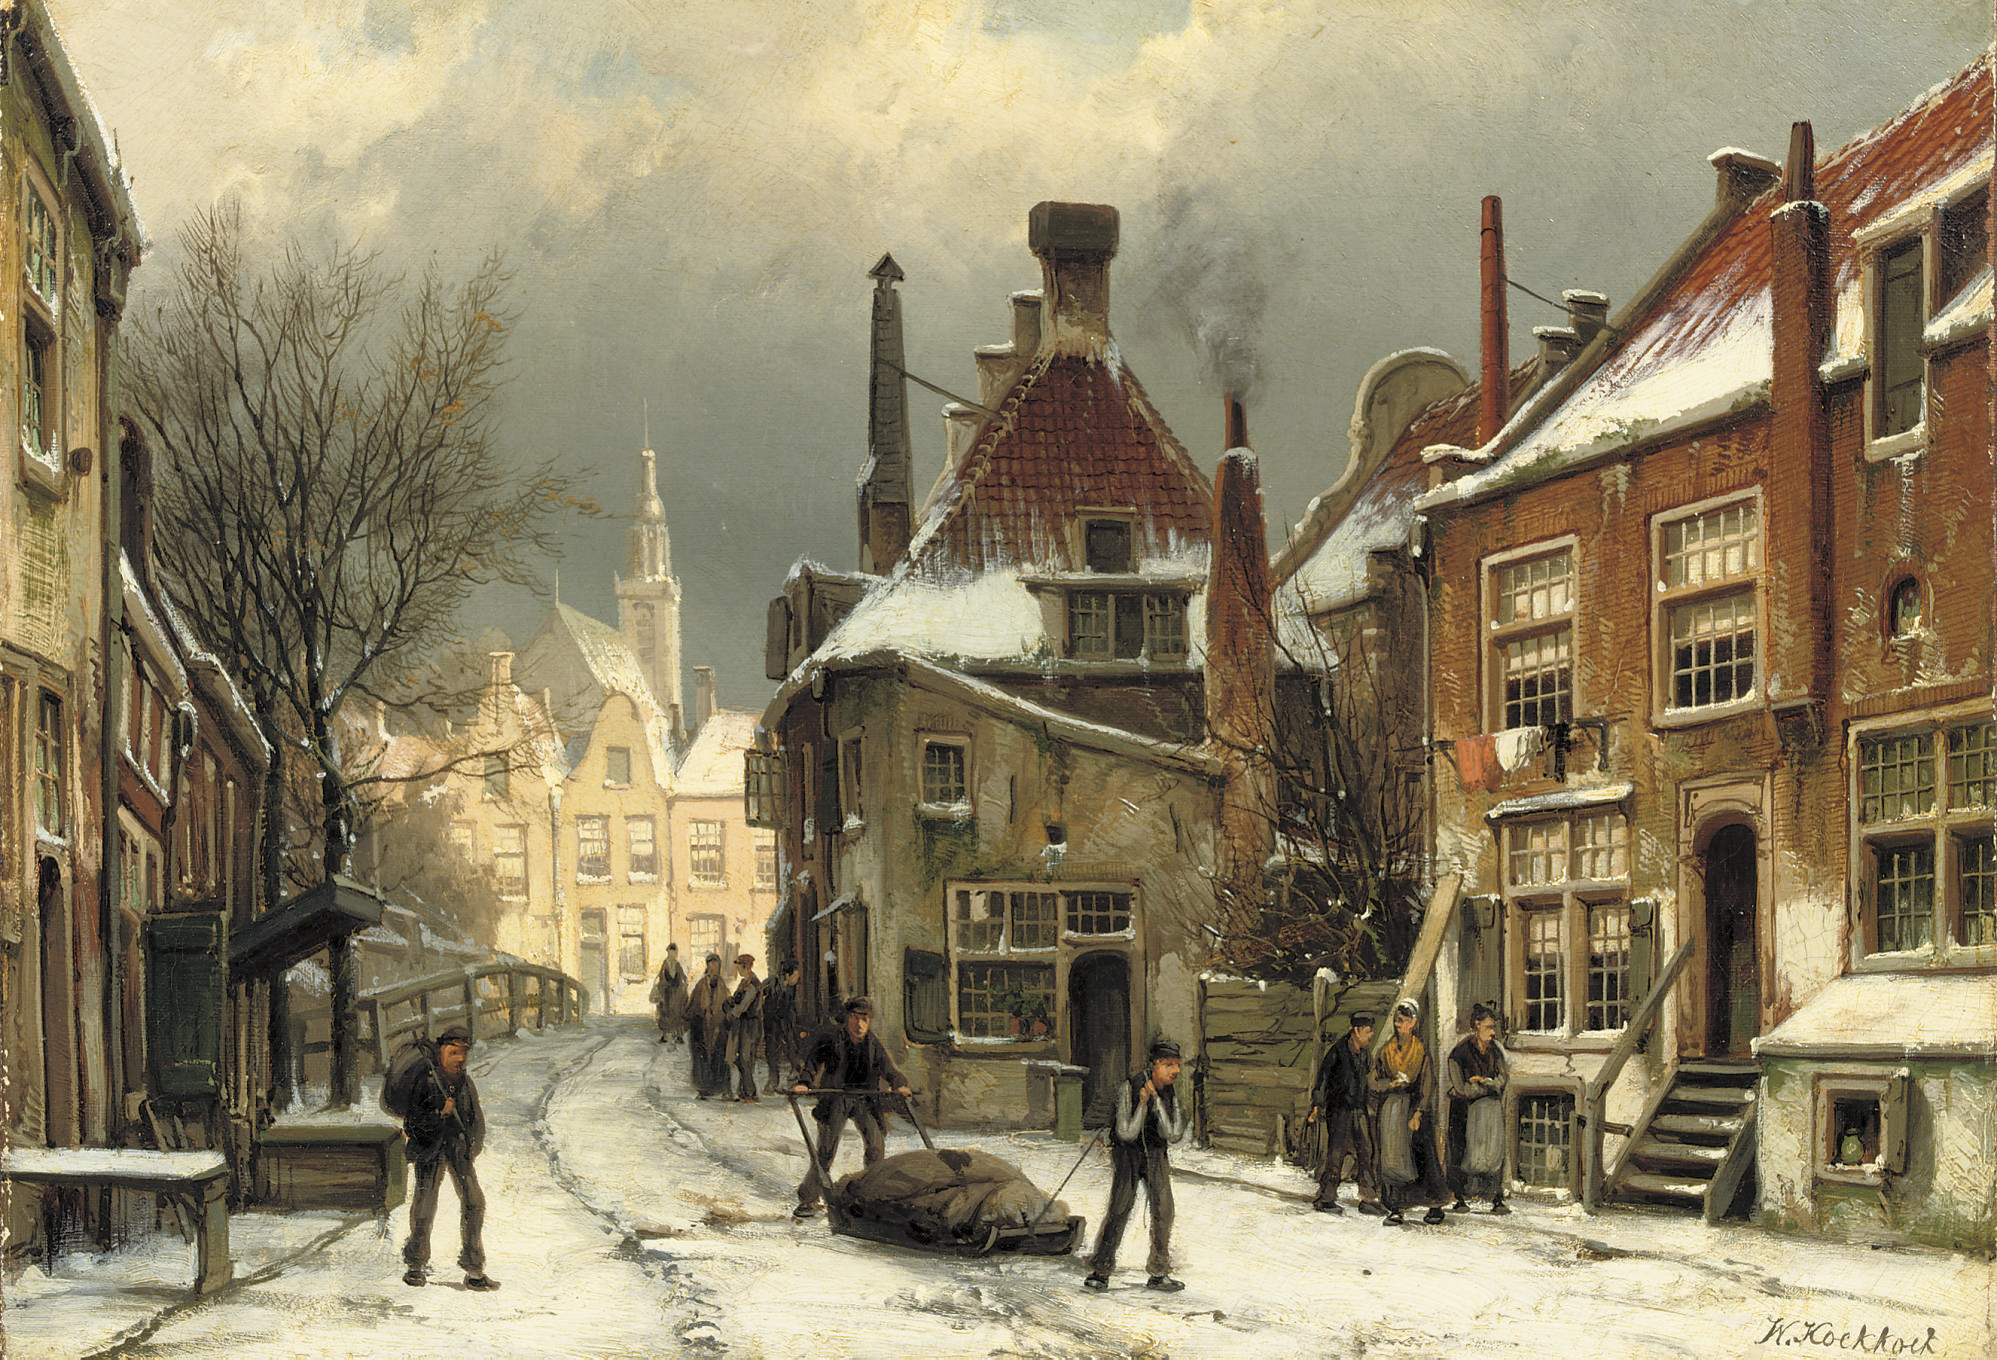 Villagers on a snow-covered street